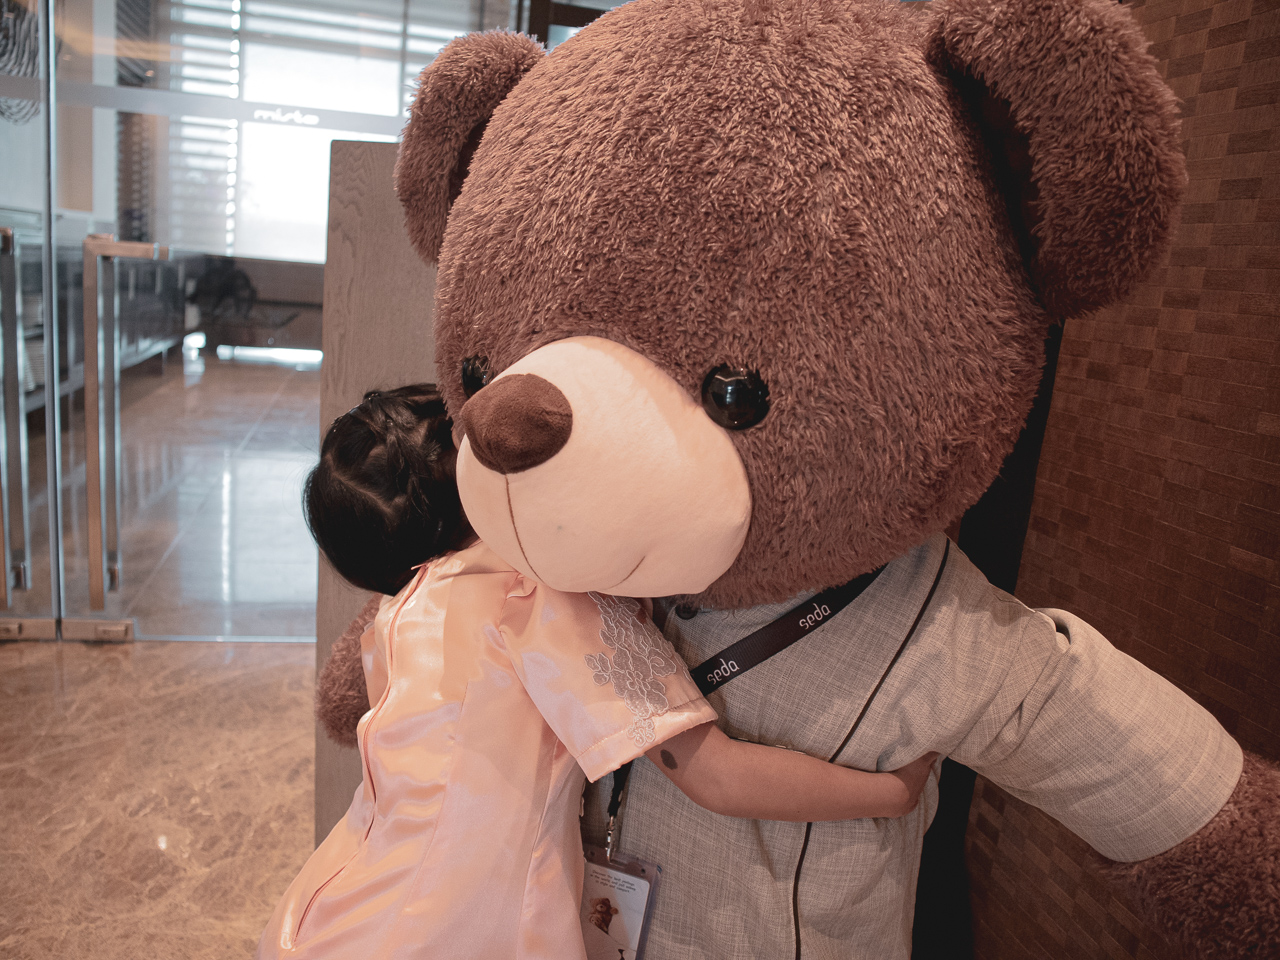 hug-for-seda-hotel-bear-2